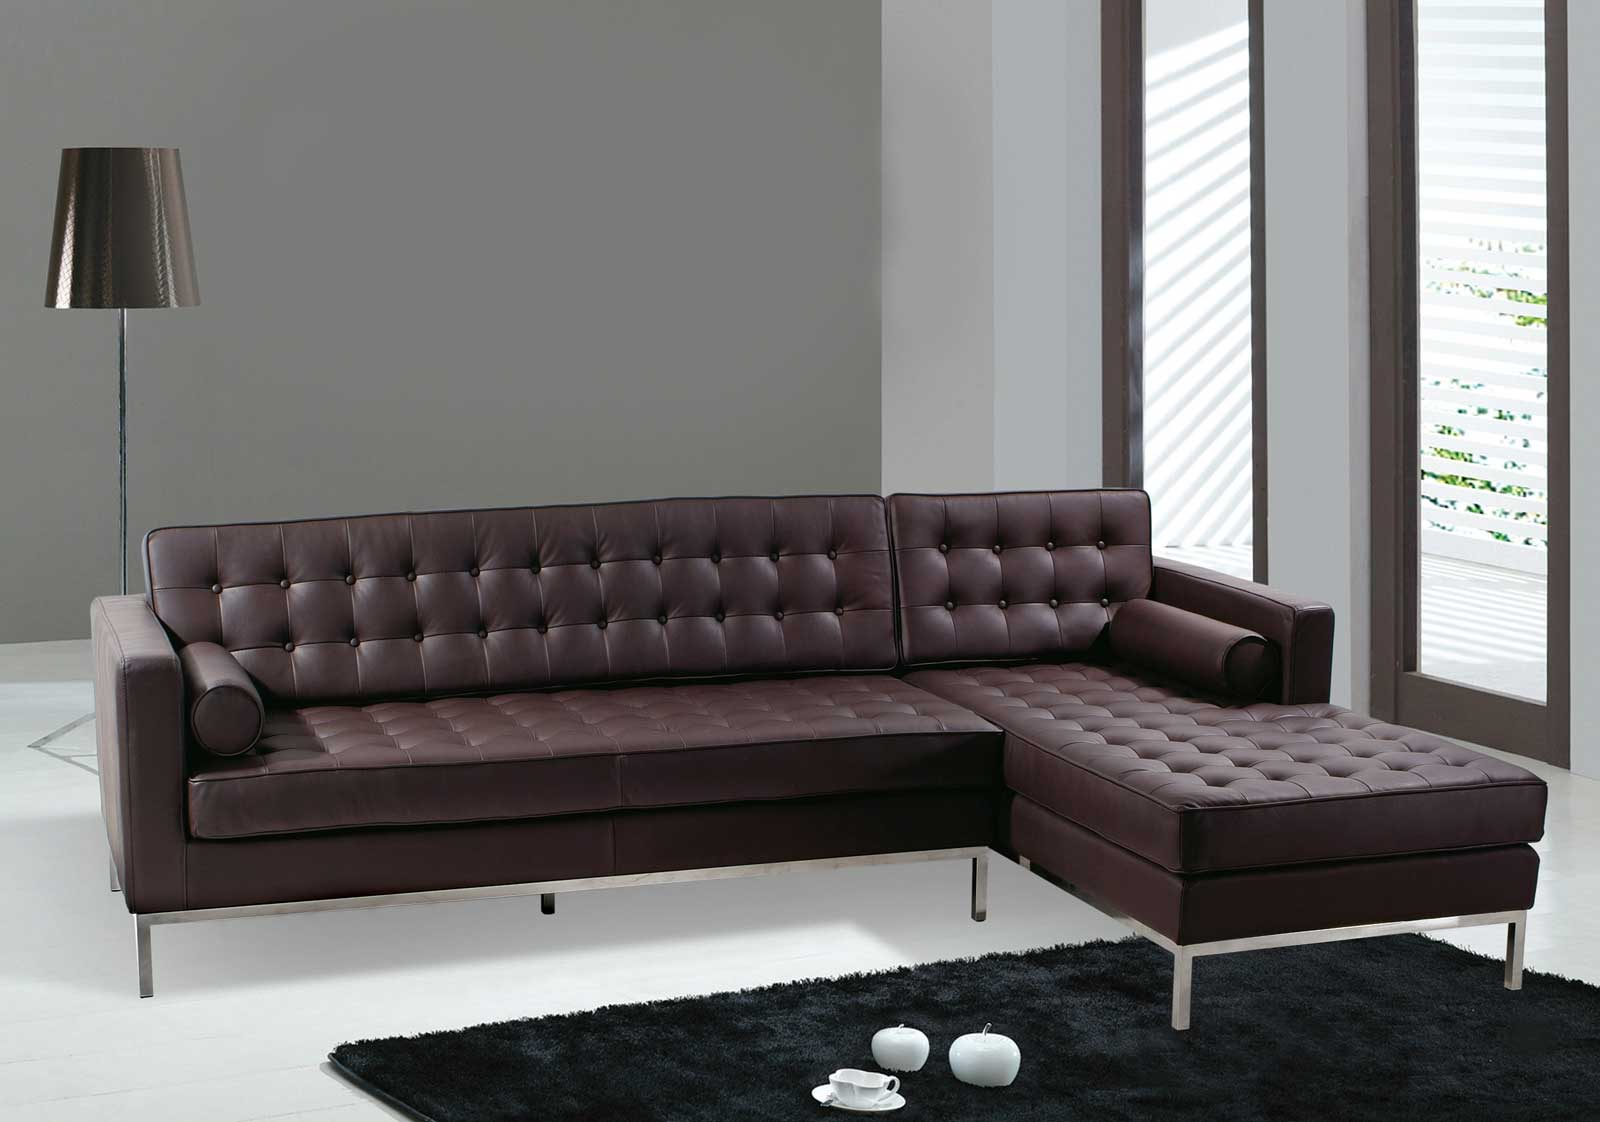 Modern sectional sofas for office waiting room for Modern living sofa